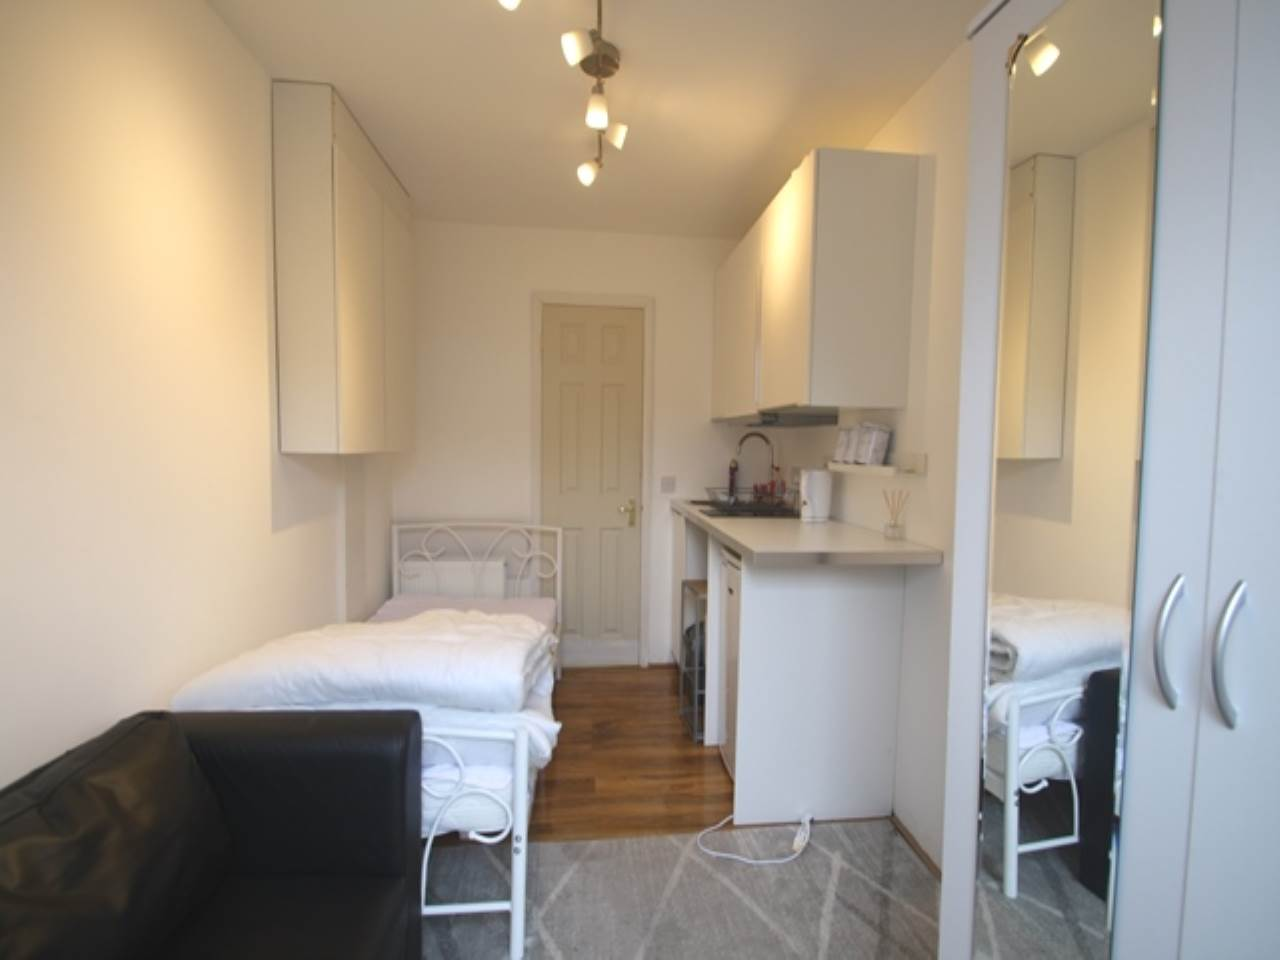 1 bed studio-flat to rent in Beckton, E6